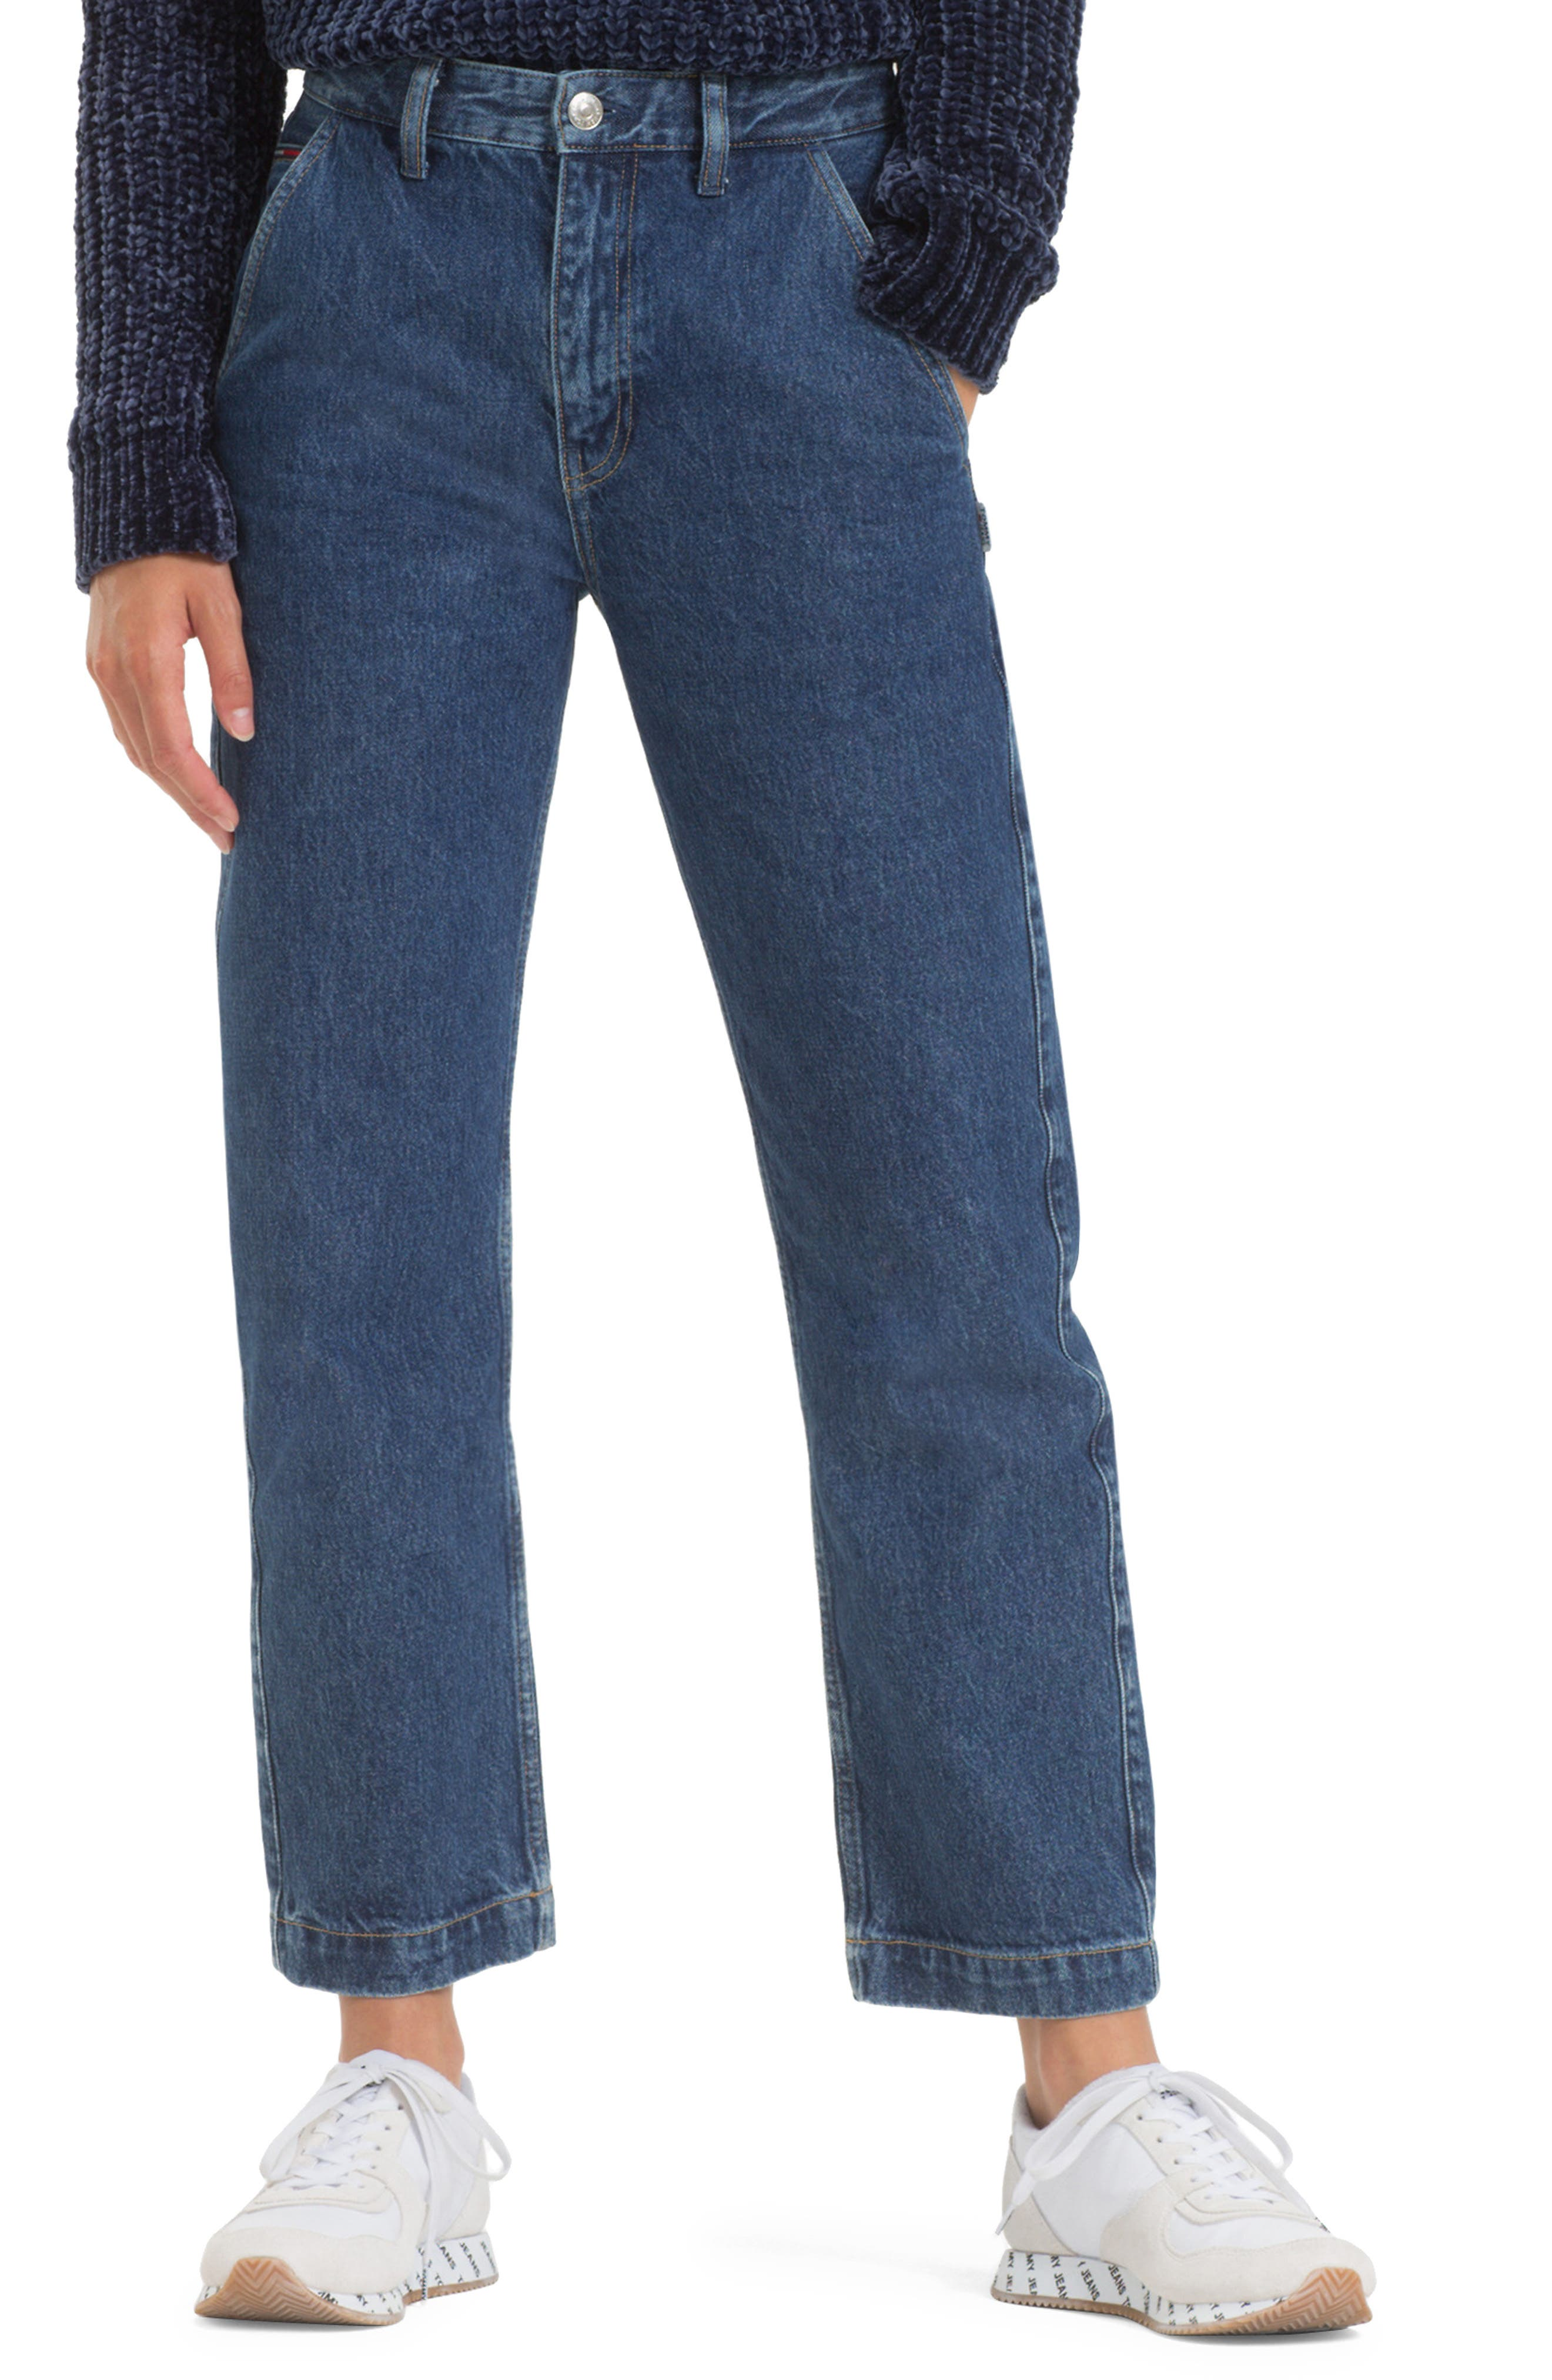 TOMMY JEANS TJW Straight Leg Jeans, Main, color, 400